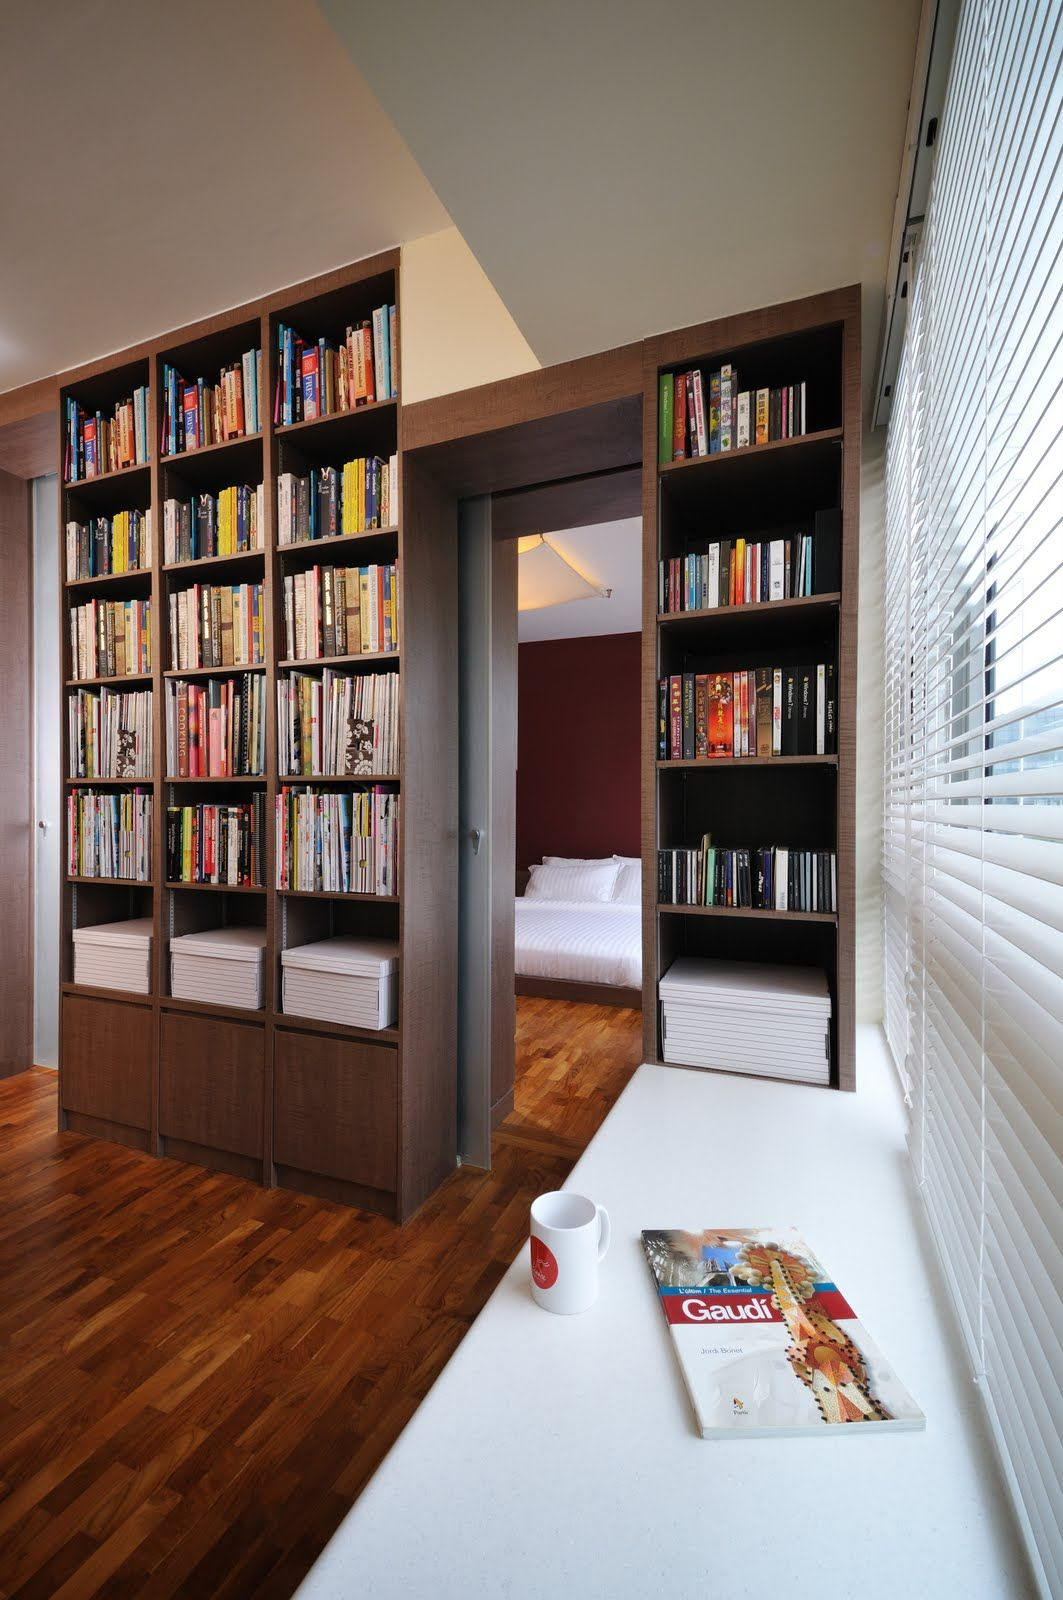 Singapore Hdb Room With Study Table: House Furniture Design, Fancy